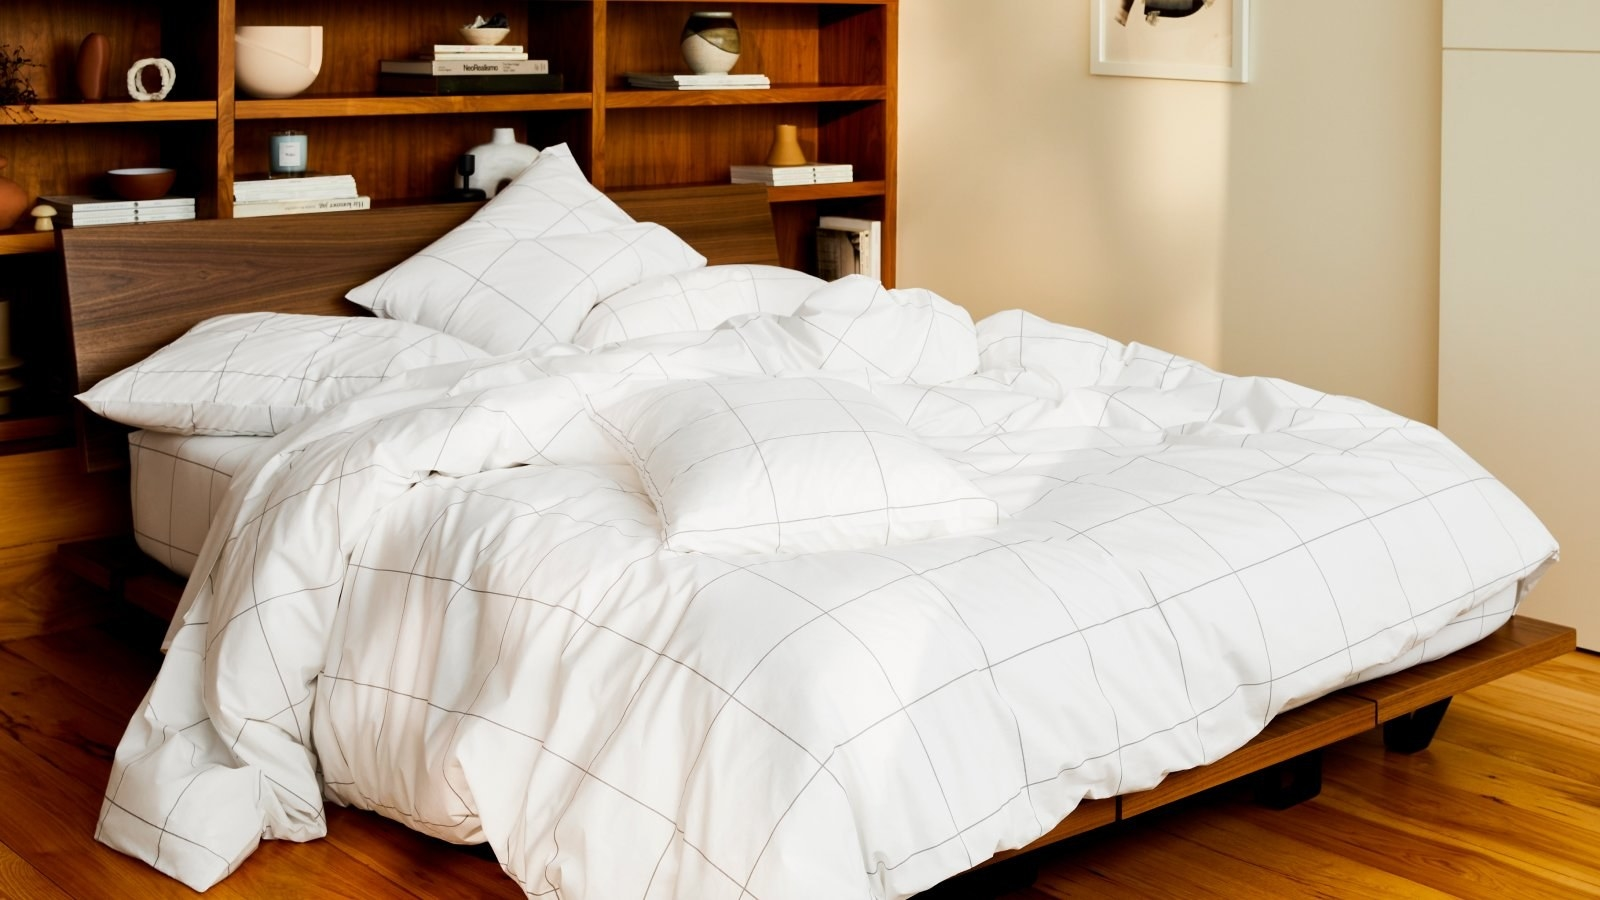 a set of white gridded sheets